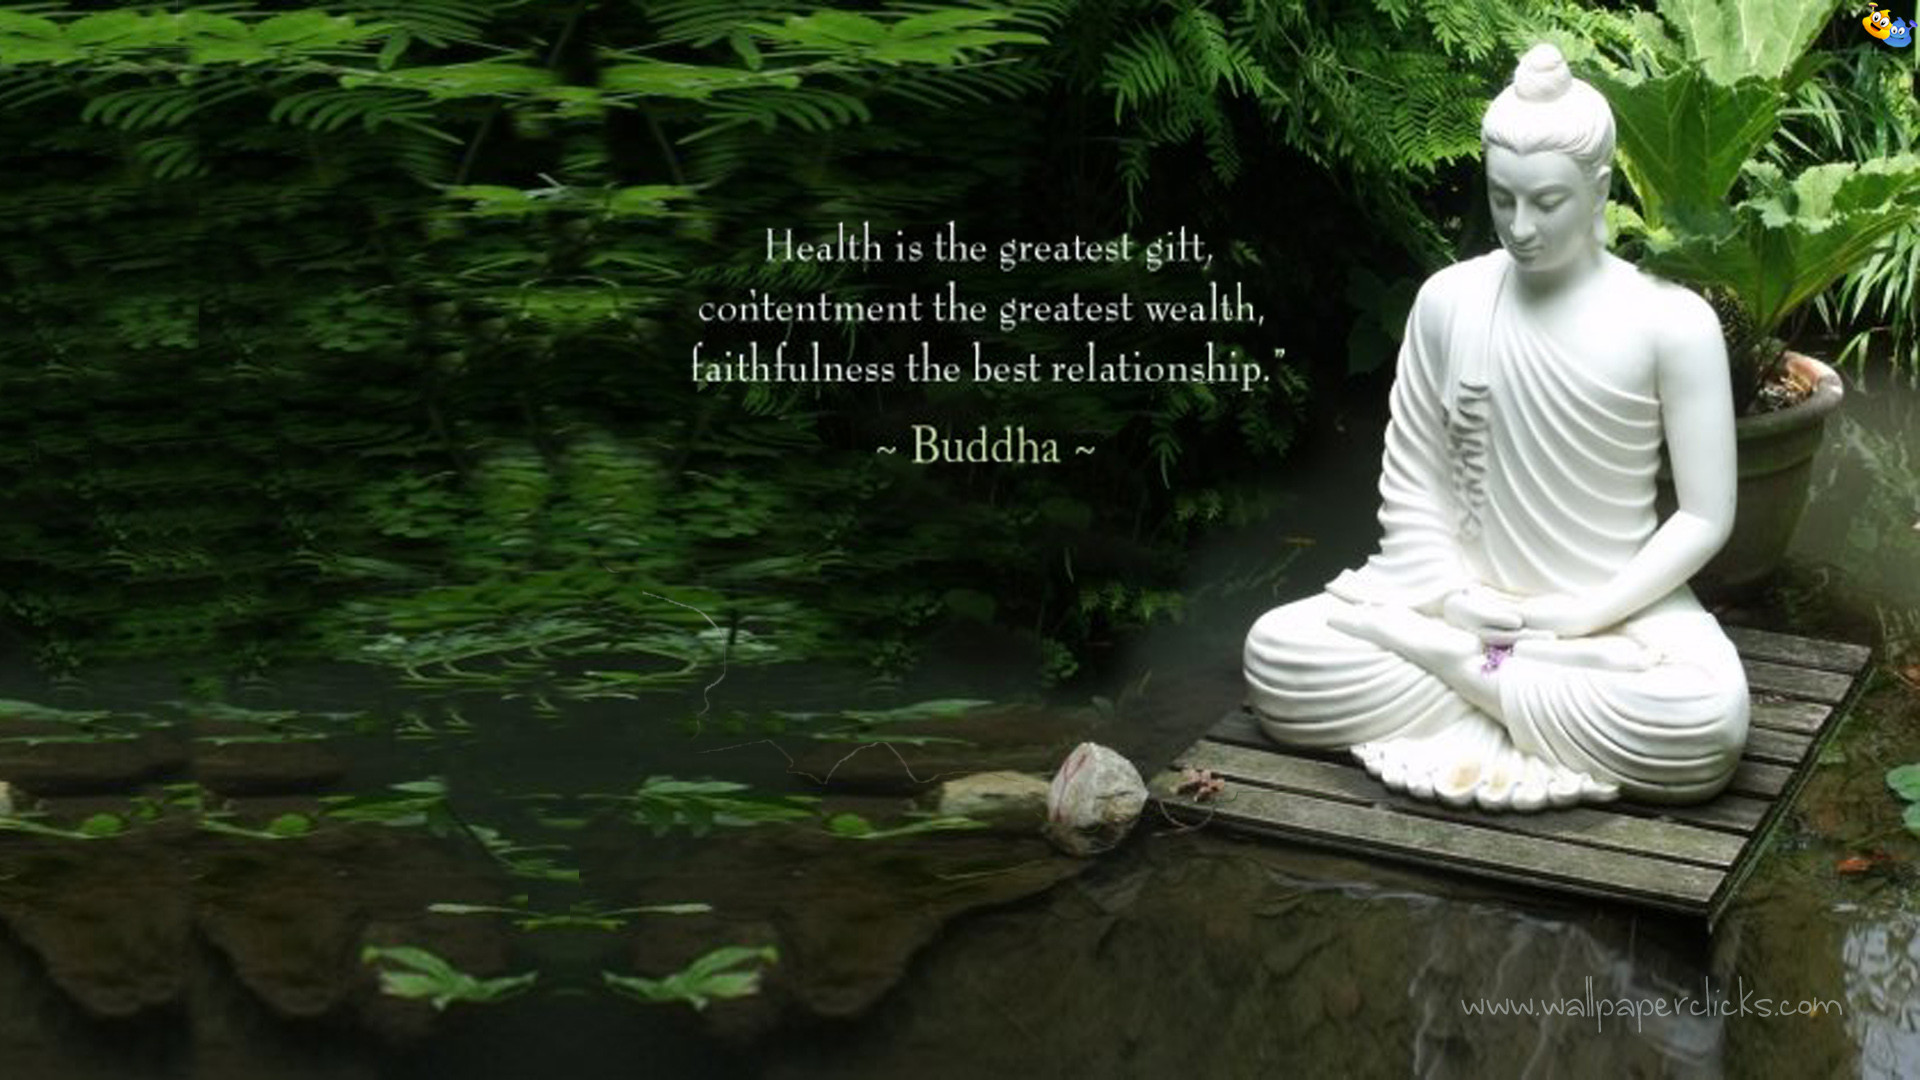 Zen Wallpaper 1920x1080: Buddhist Wallpaper And Screensavers (63+ Images